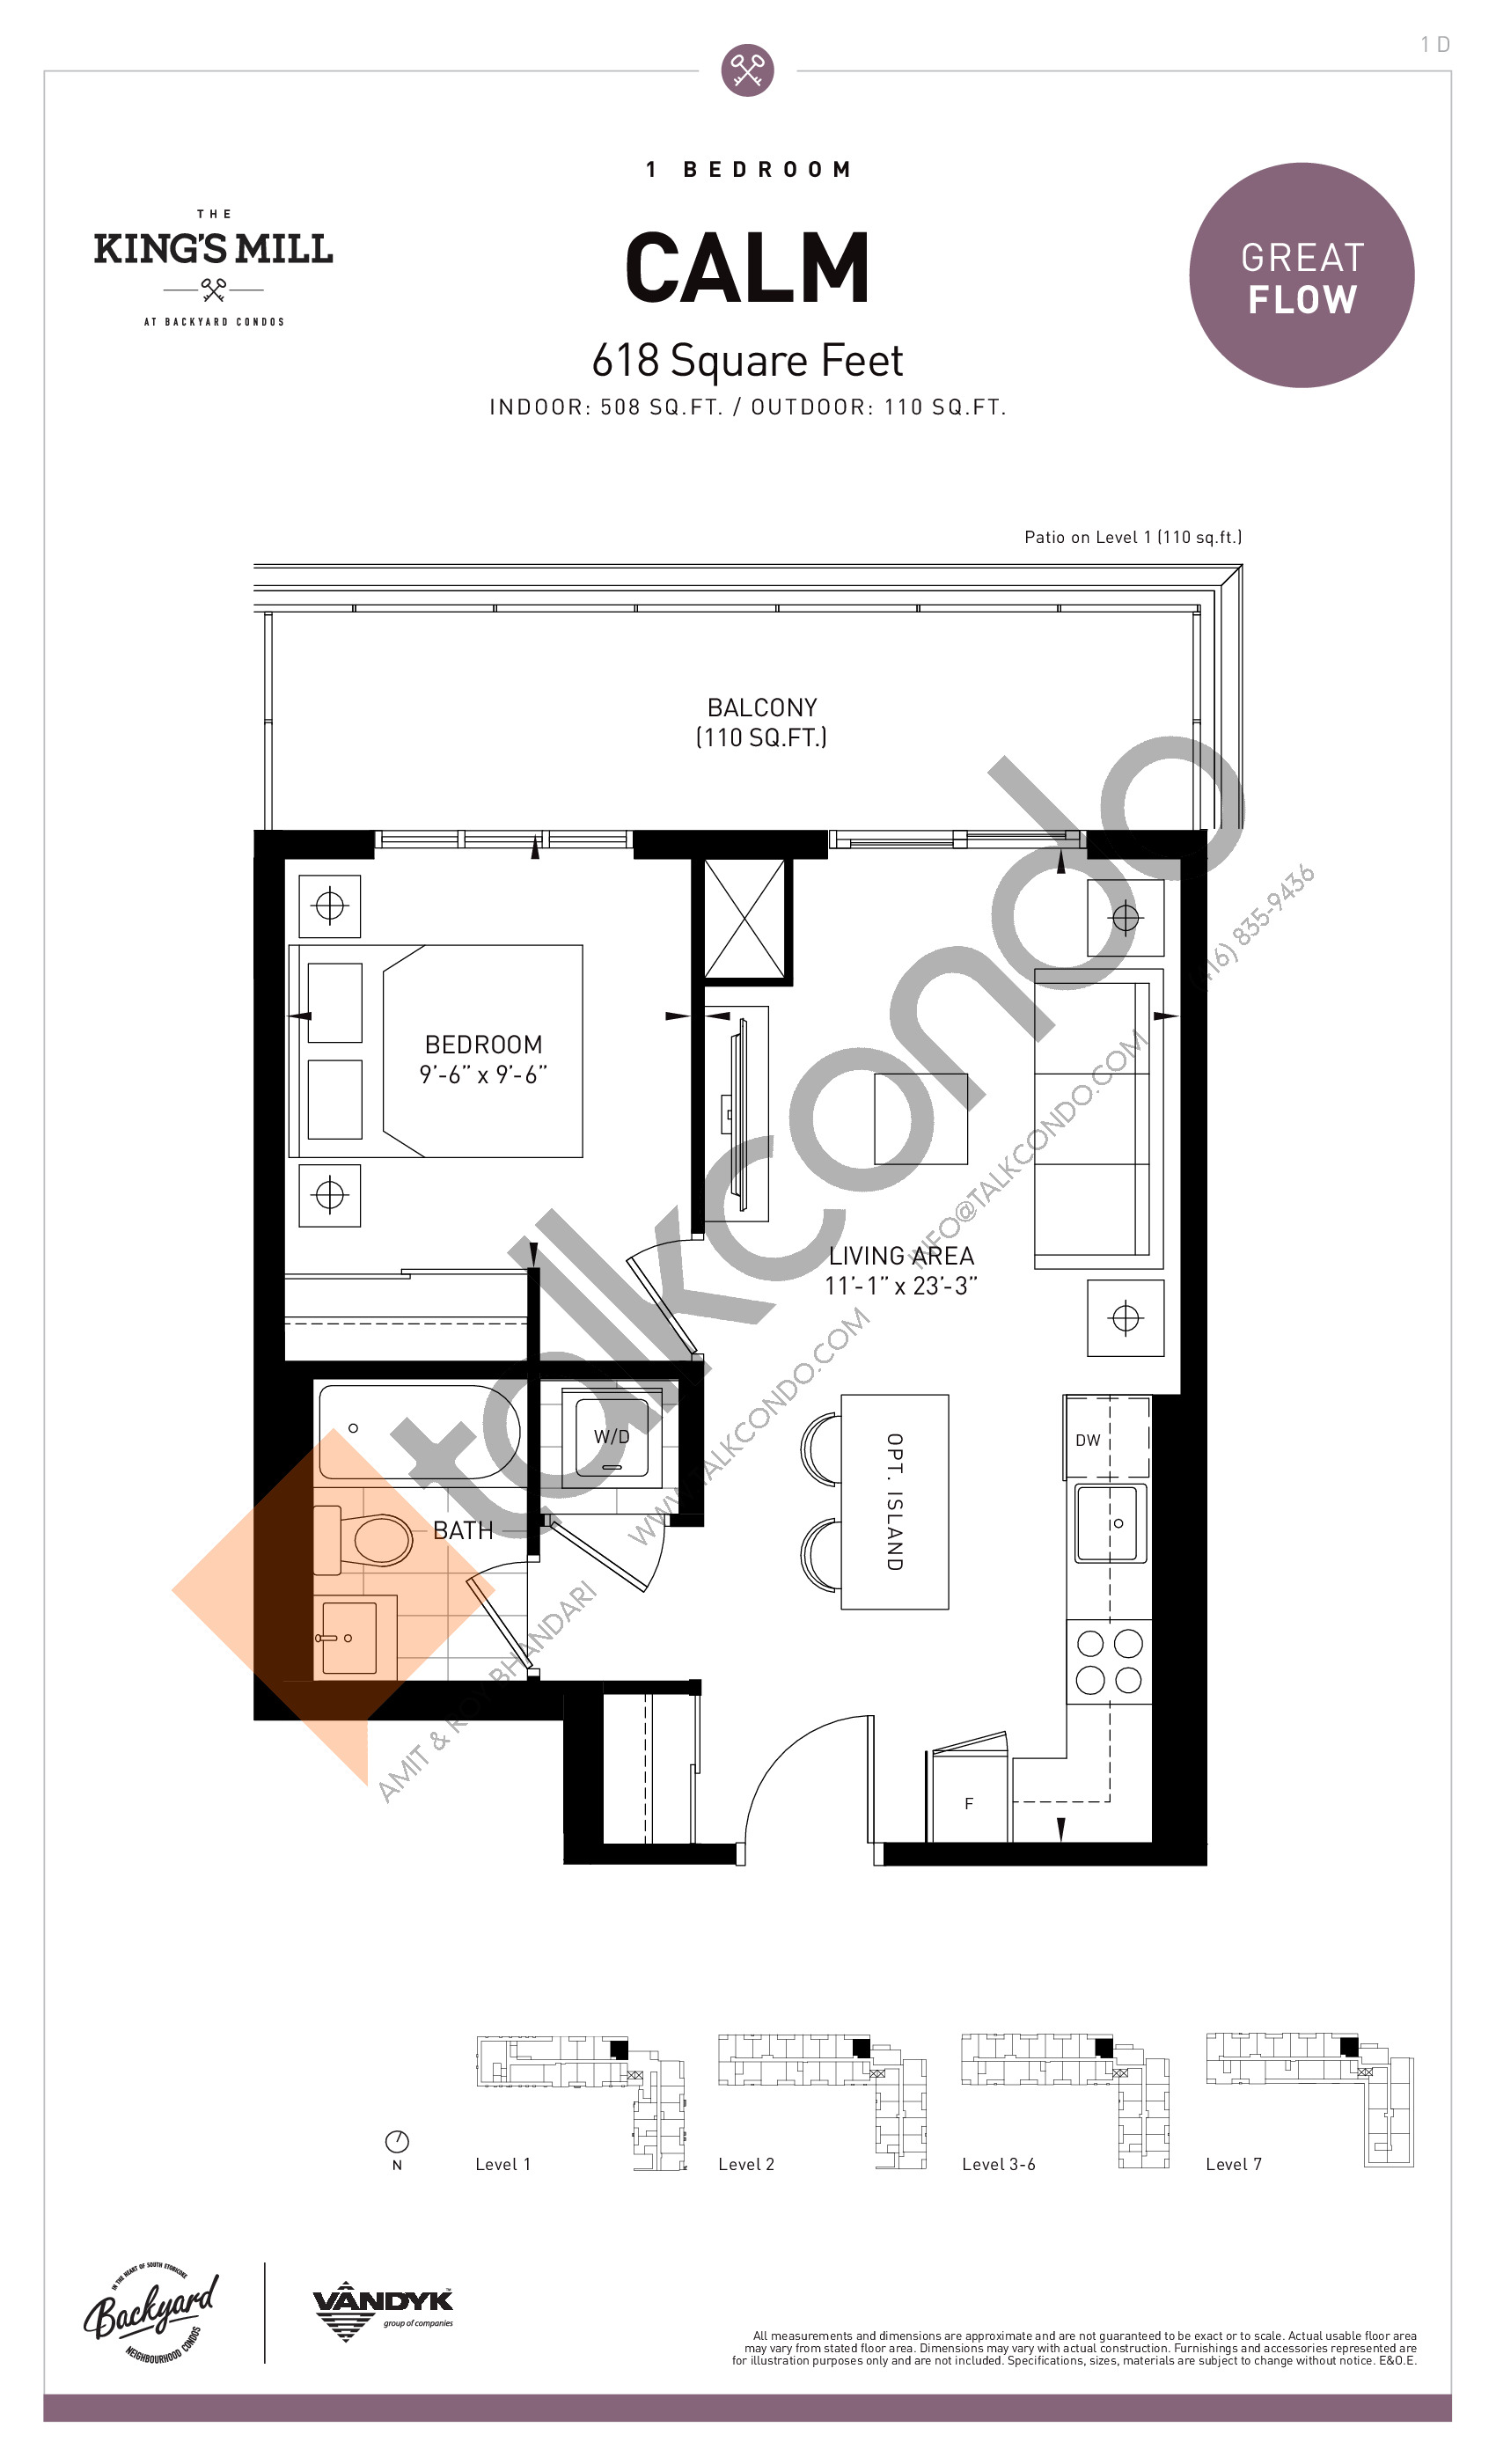 Calm Floor Plan at The King's Mill Condos - 508 sq.ft